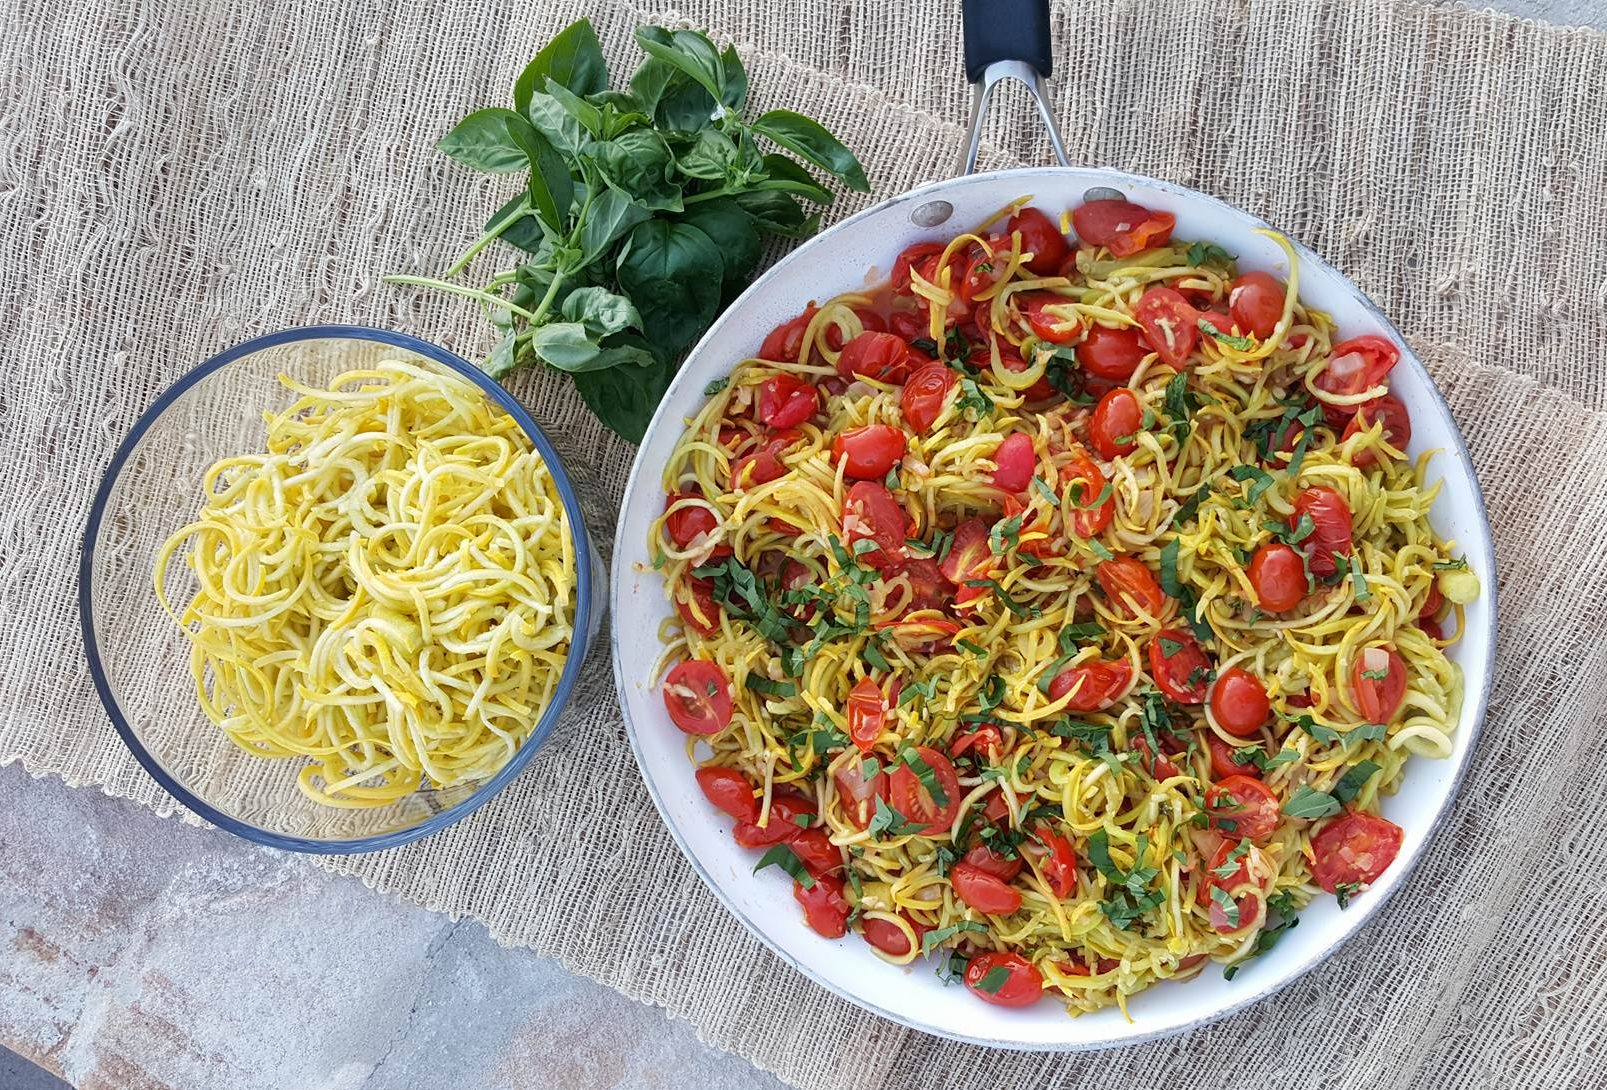 ... Squash 'Spaghetti' with Roasted Tomato Sauce | Clean Food Crush